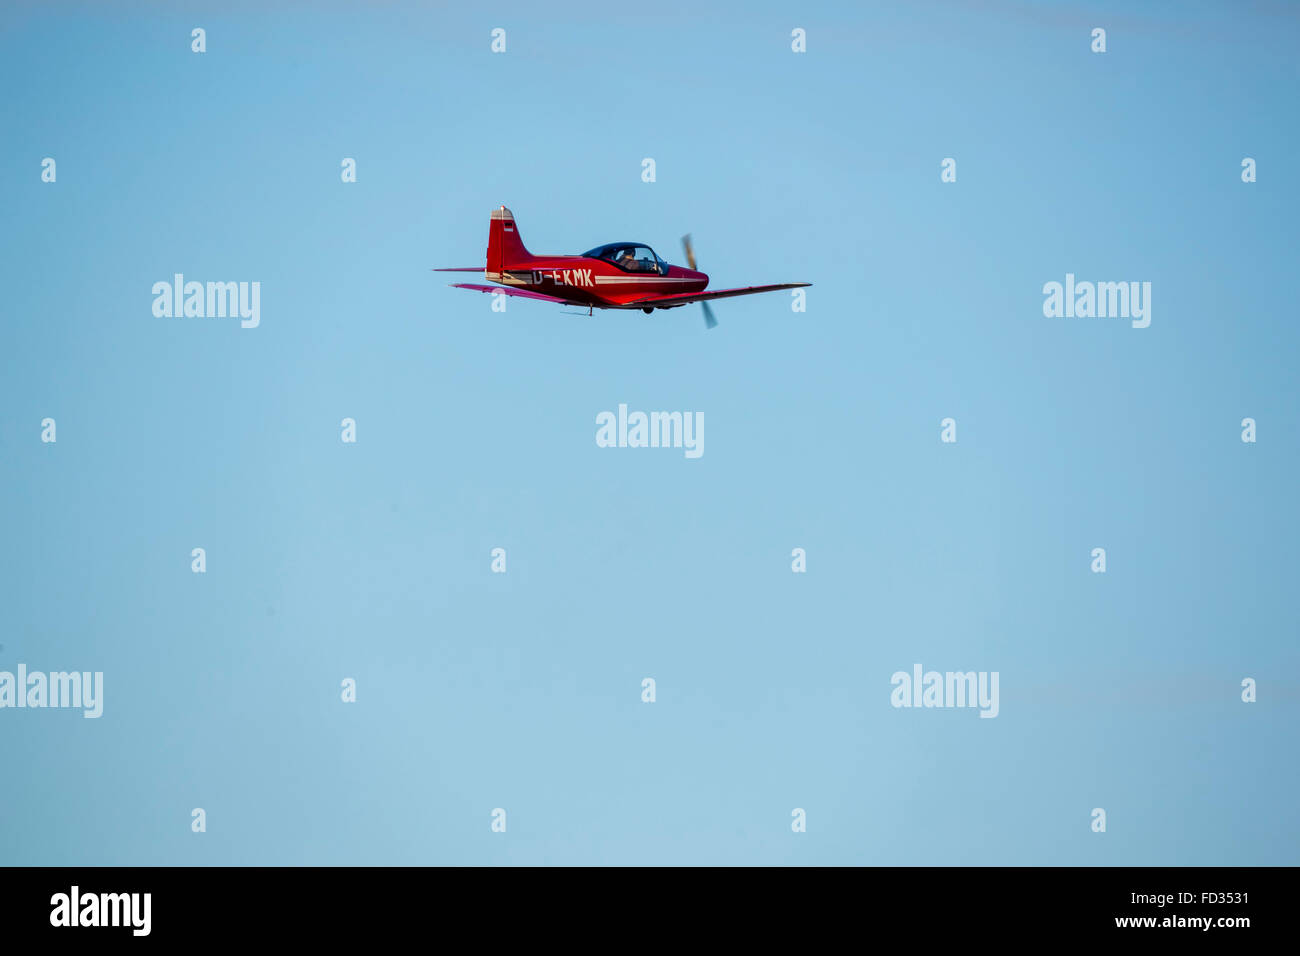 Aerial view, red plane Falco, timber construction, D-EKMEK, general aviation, rice aircraft Echo class light aircraft Stock Photo